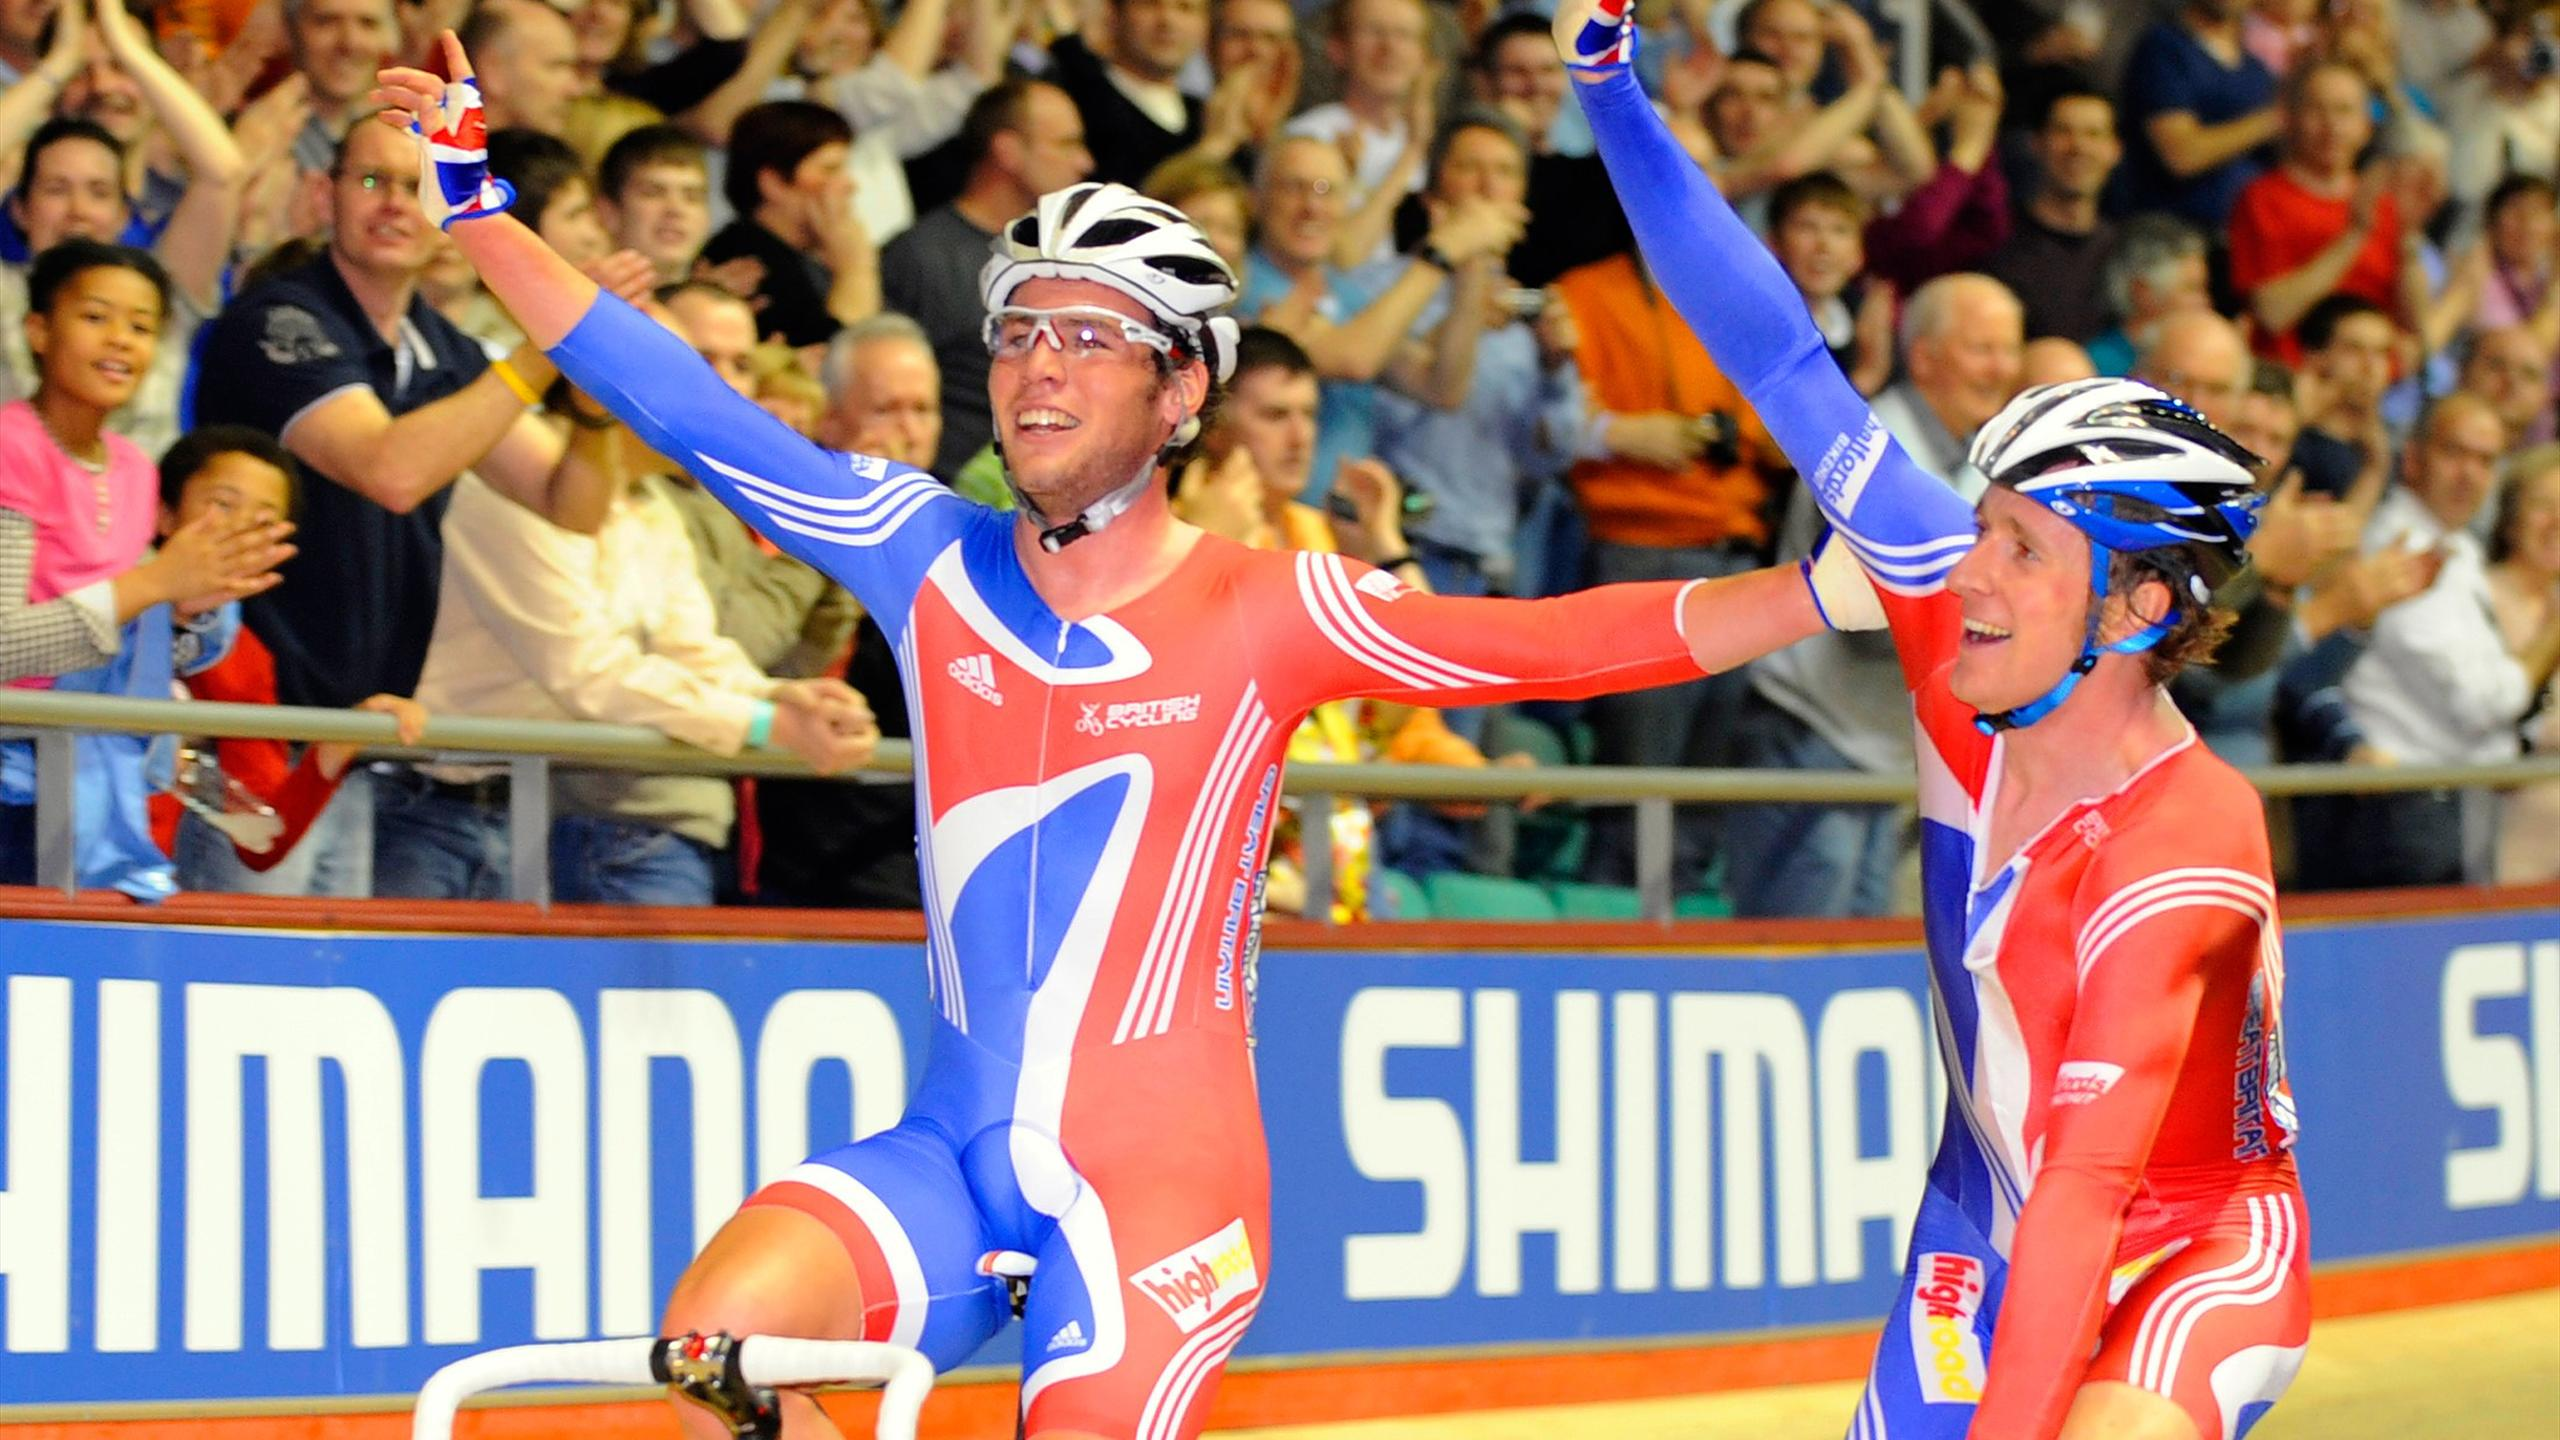 Britain's Bradley Wiggins (R) and Mark Cavendish react after winning gold in the men's Madison on the fourth day of competition at the track cycling world championships in Manchester in 2008